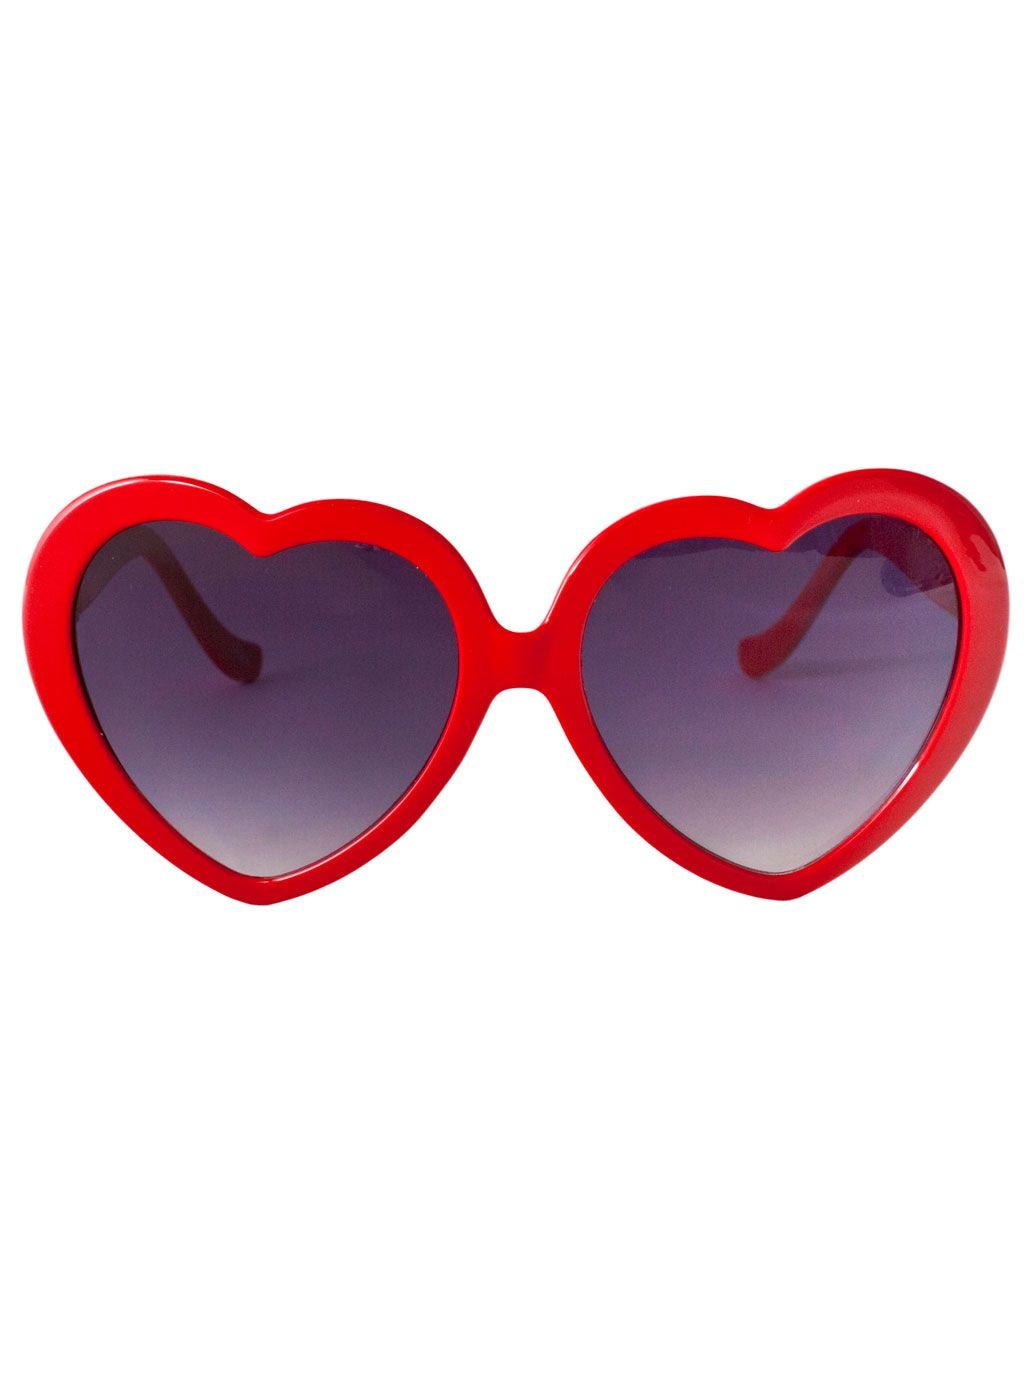 2a54fed81ad Heart Sunglasses